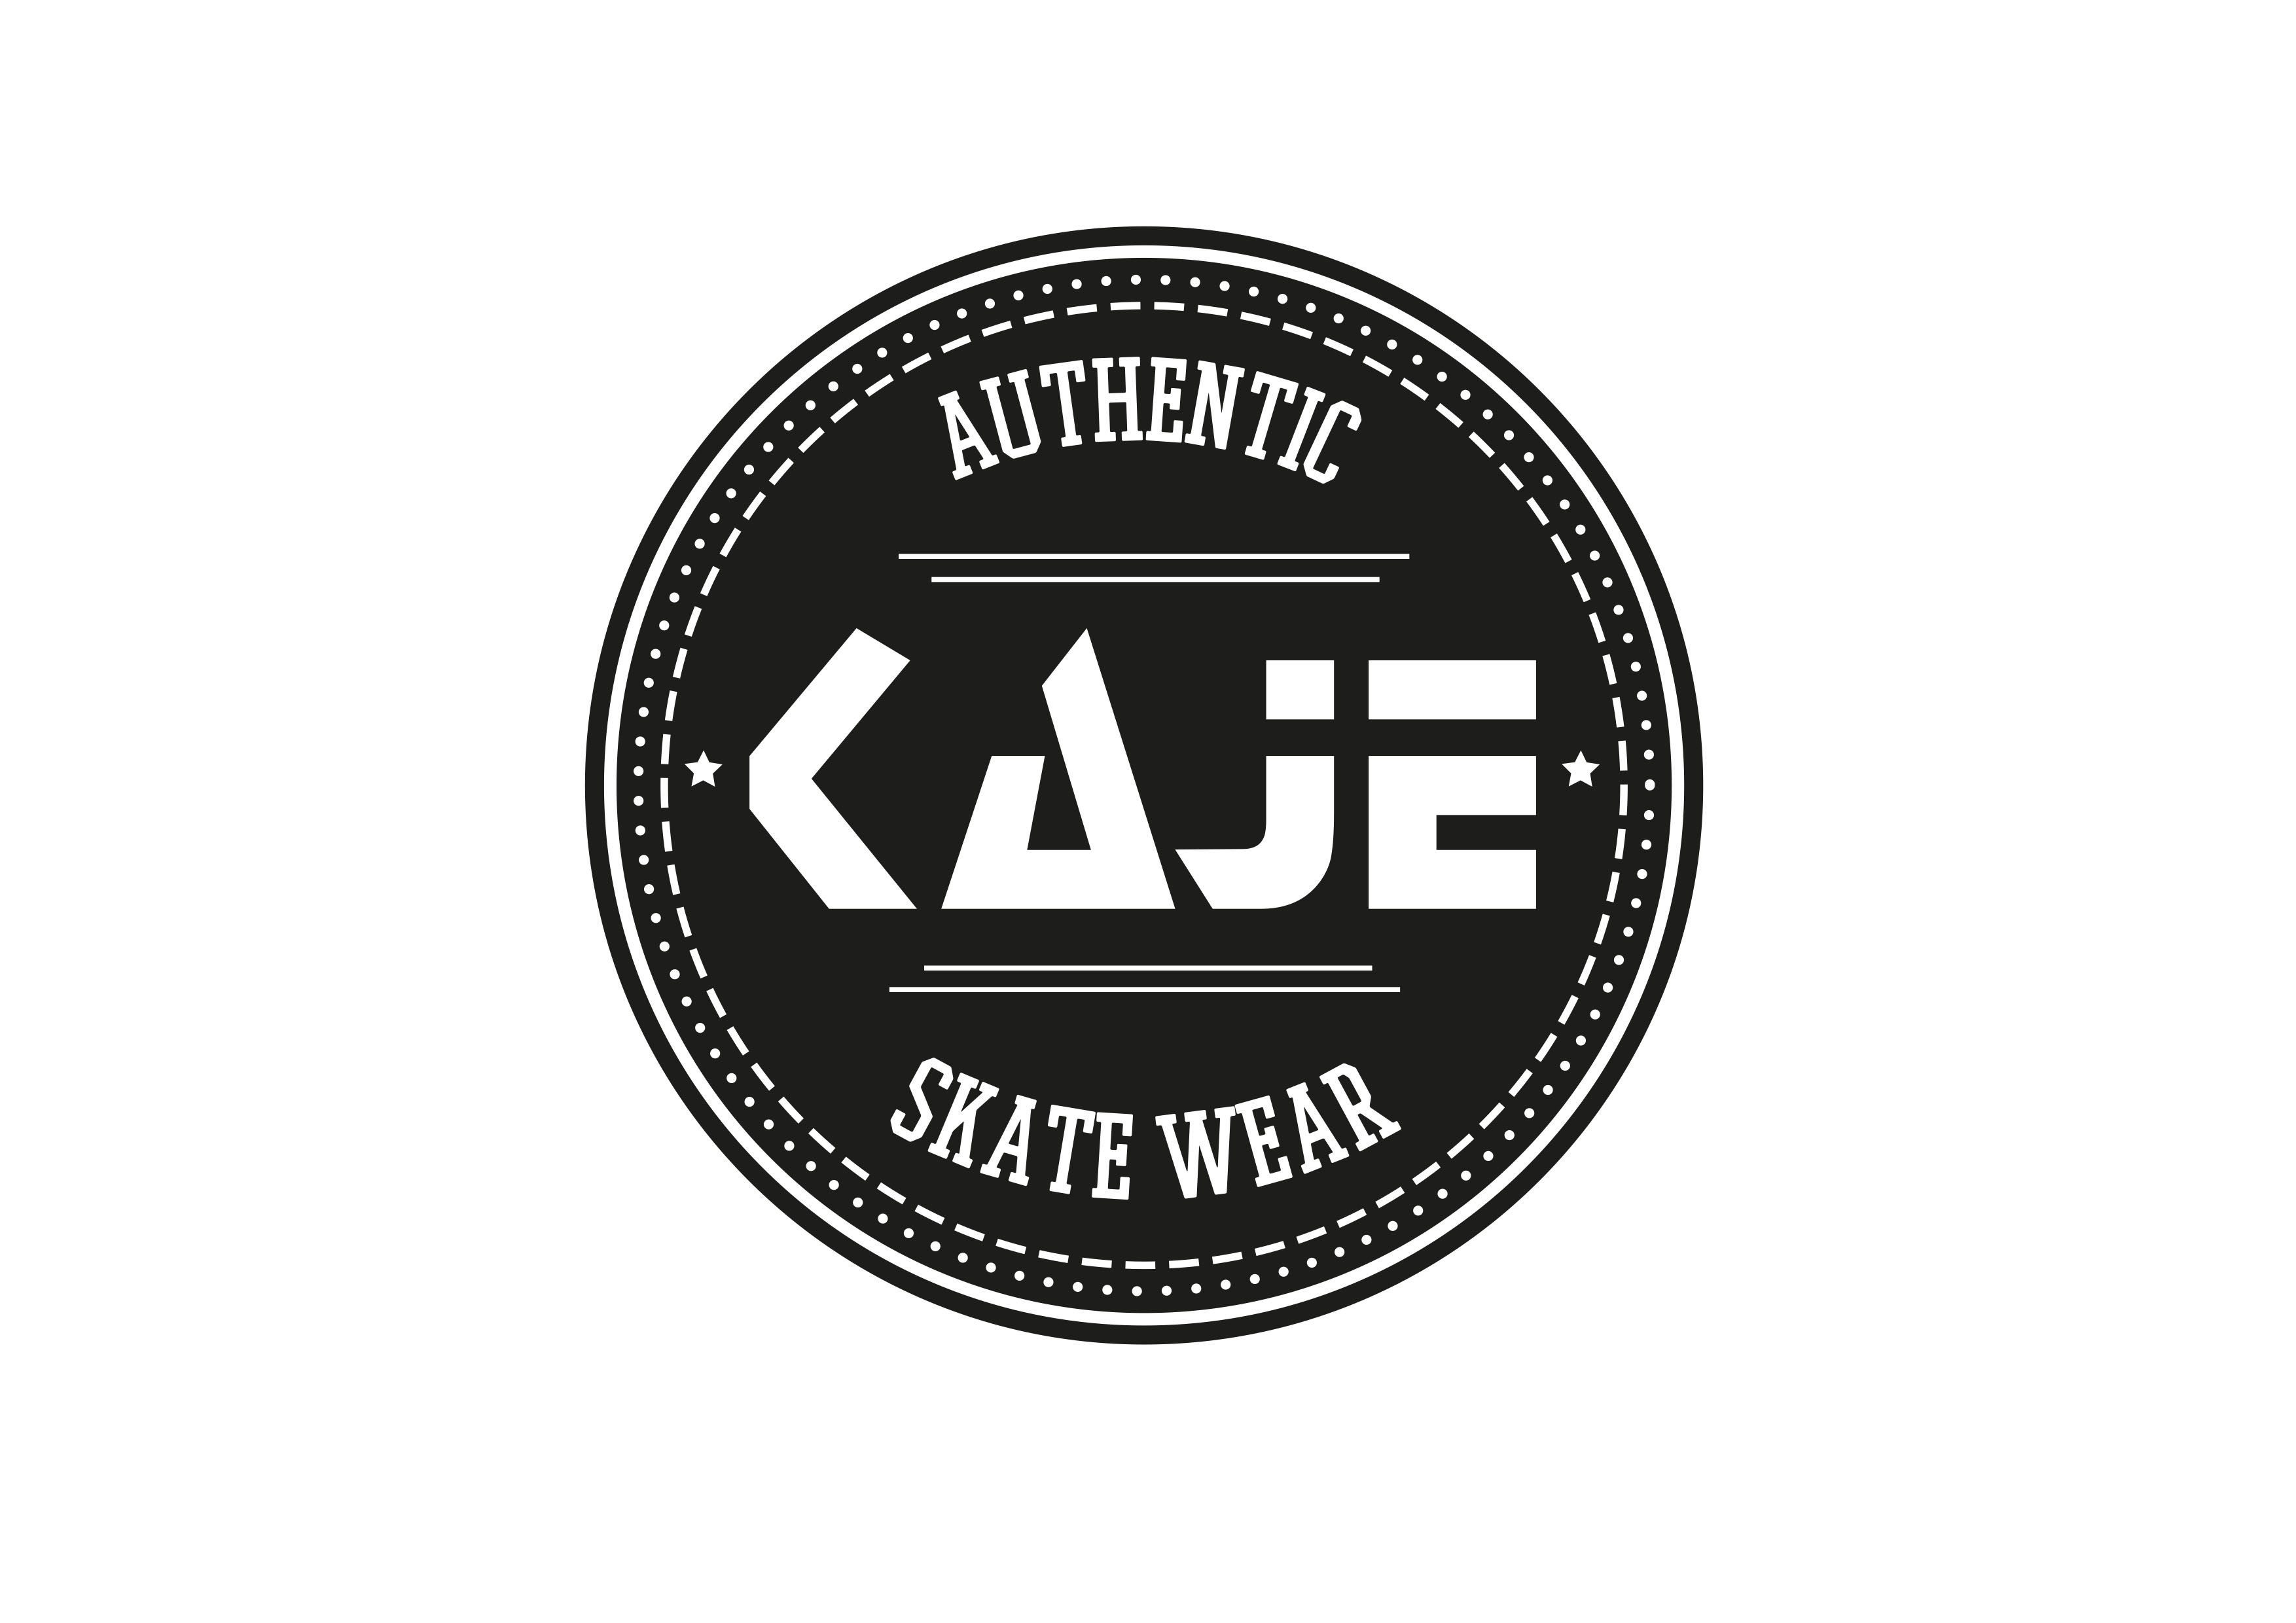 Skateboard Clothing Brands Logo - Skate Clothing Brand Logos 16844 | TRENDNET